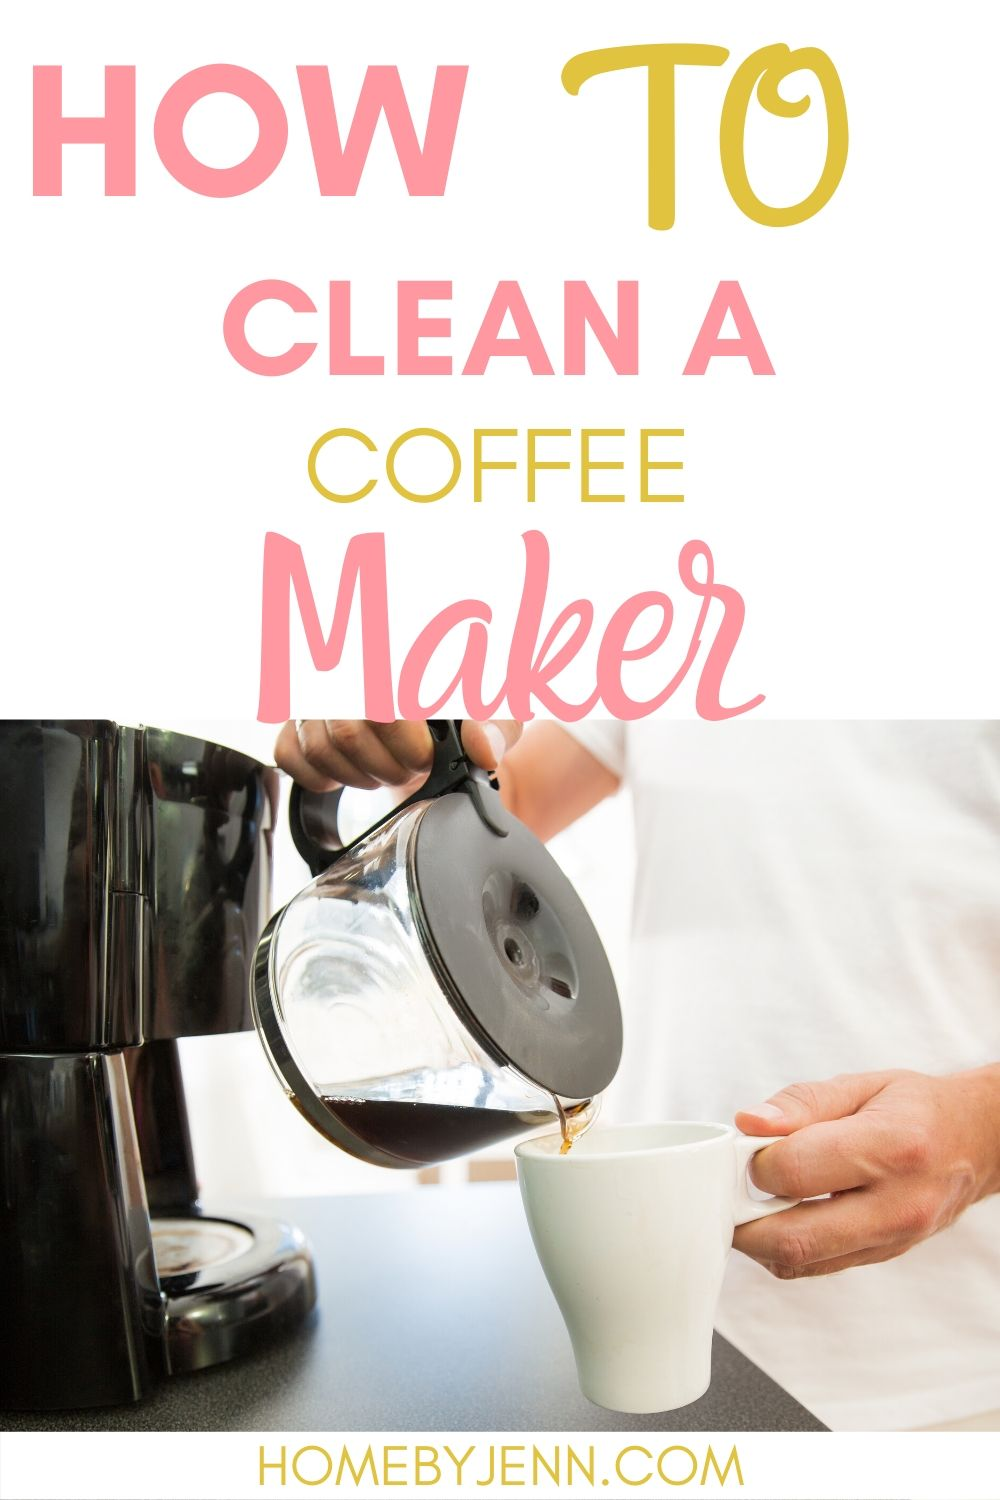 Having a clean coffee maker will ensure your coffee will taste fresh.  Learn how to clean a coffee maker and extend the life of your coffee maker. #howtocleancoffeemaker #tipsforcleaningcoffeemaker #cleaningtips #cleaningtipsforthehome #cleaninghacks #cleaningtipsandtricks #deepcleaningtips #deepcleaninghacks via @homebyjenn